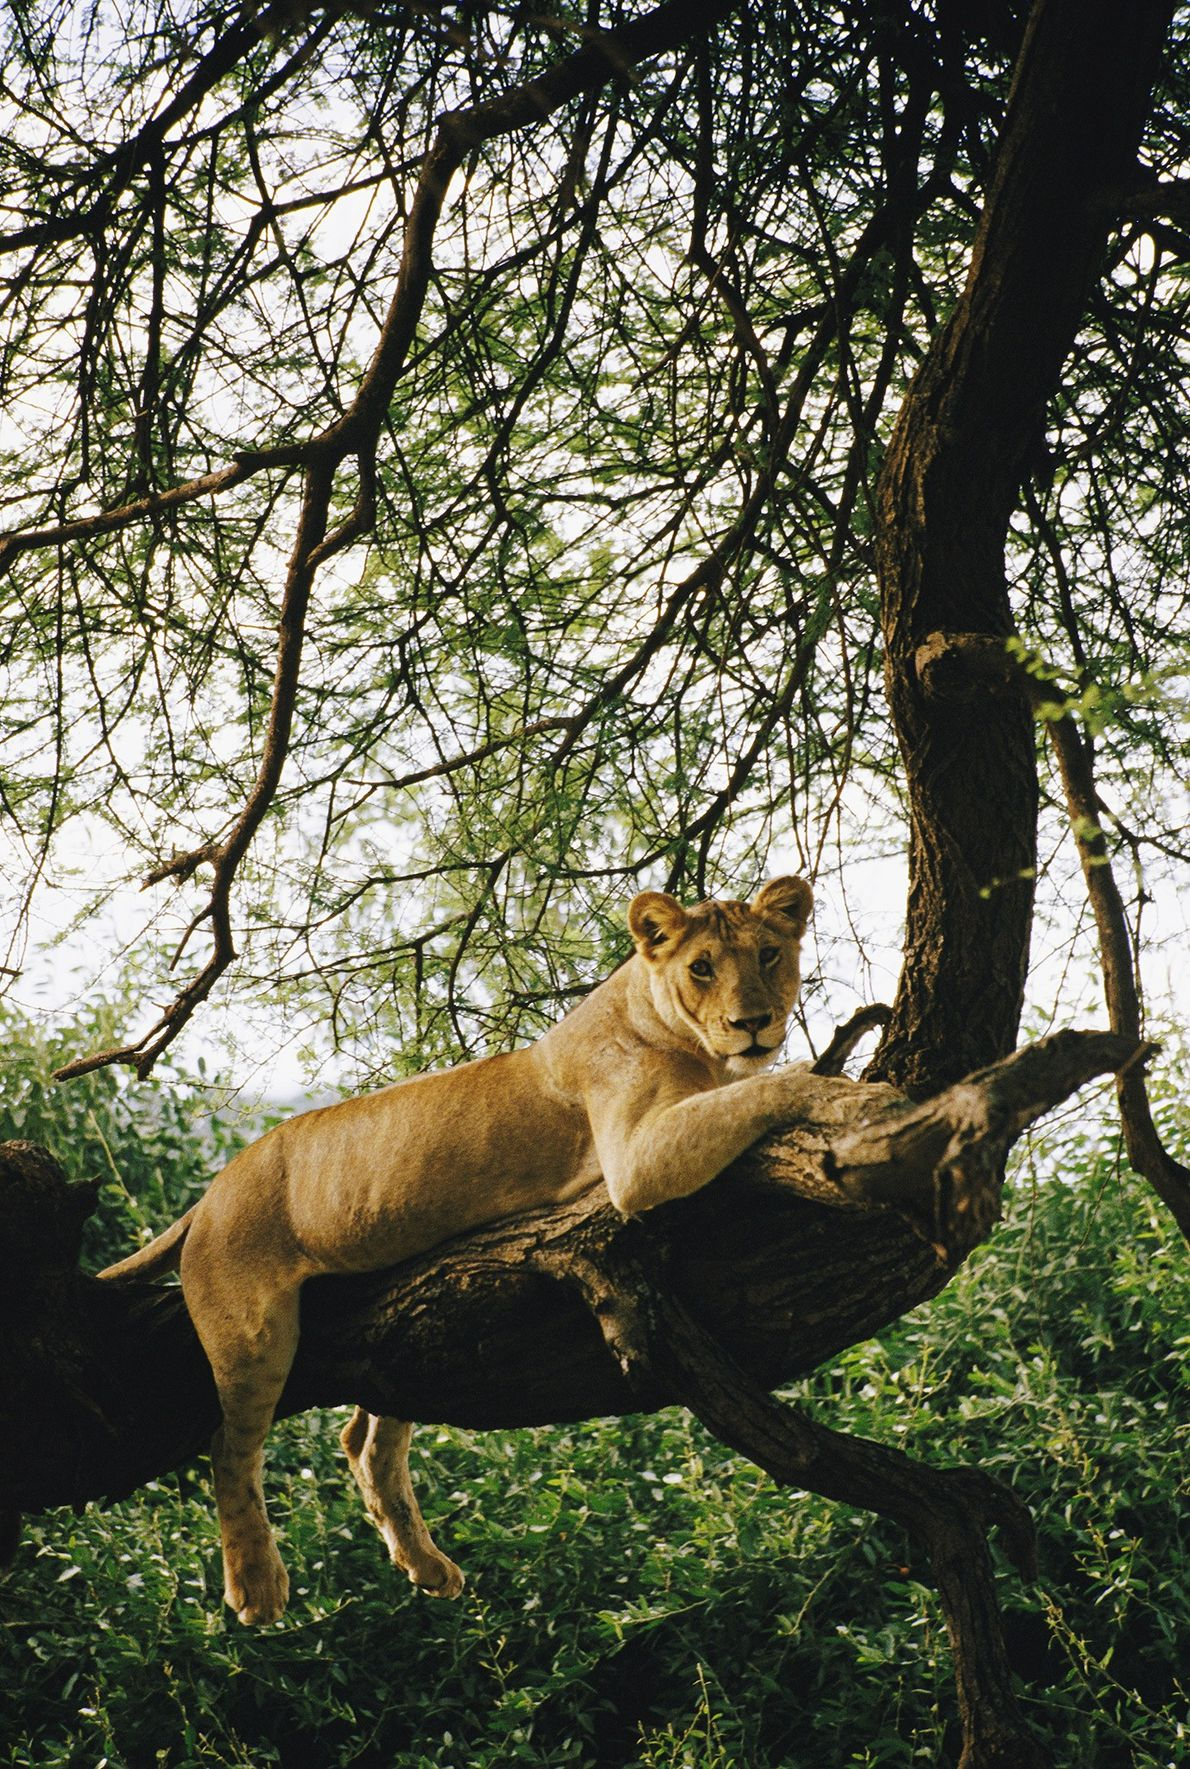 A lion relaxes on a tree branch at Lake Manyara National Park in northern Tanzania.